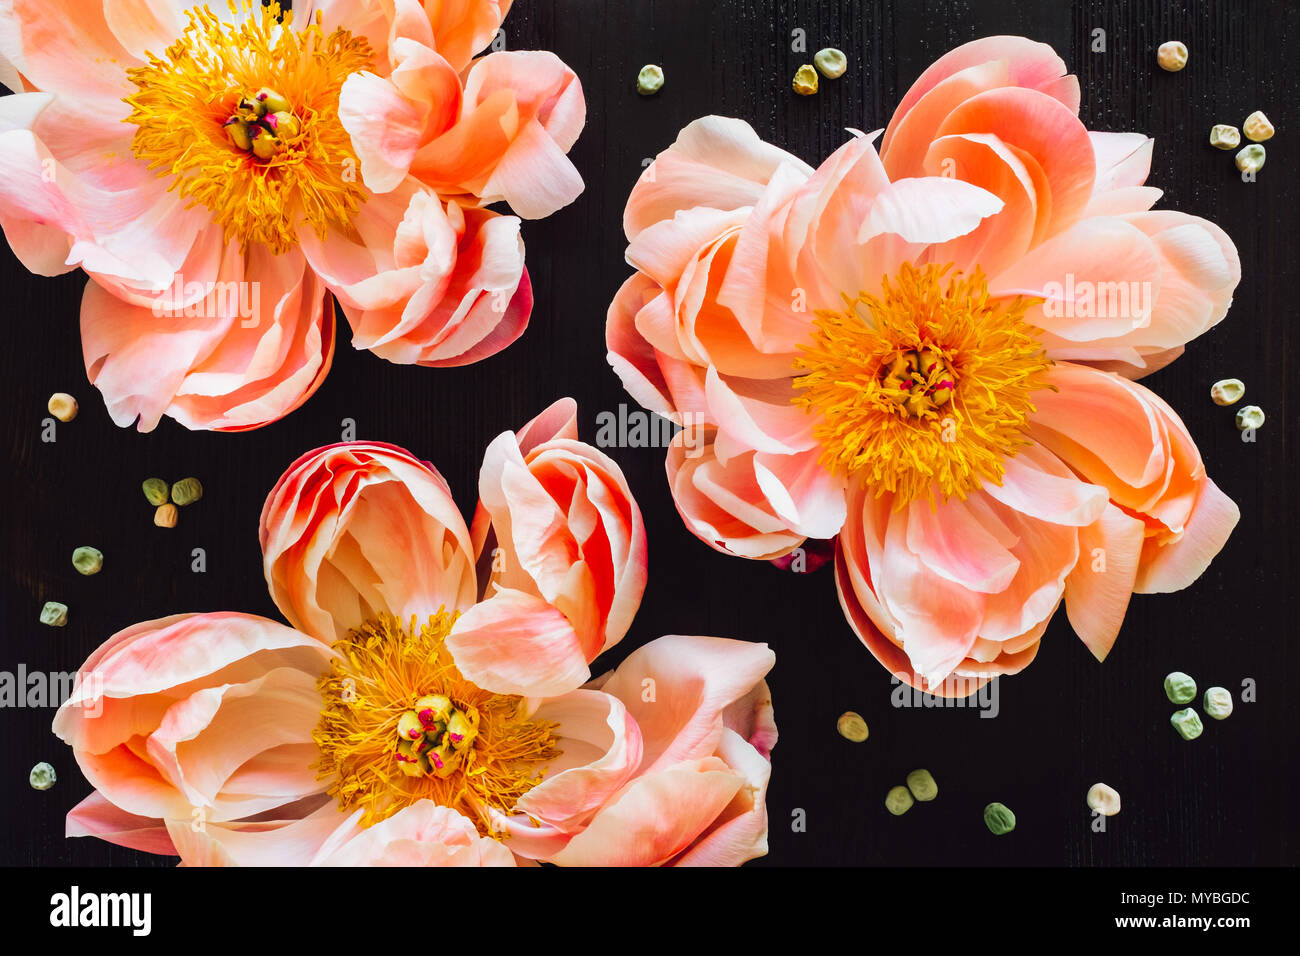 Three Peach Peonies on Dark Table Stock Photo